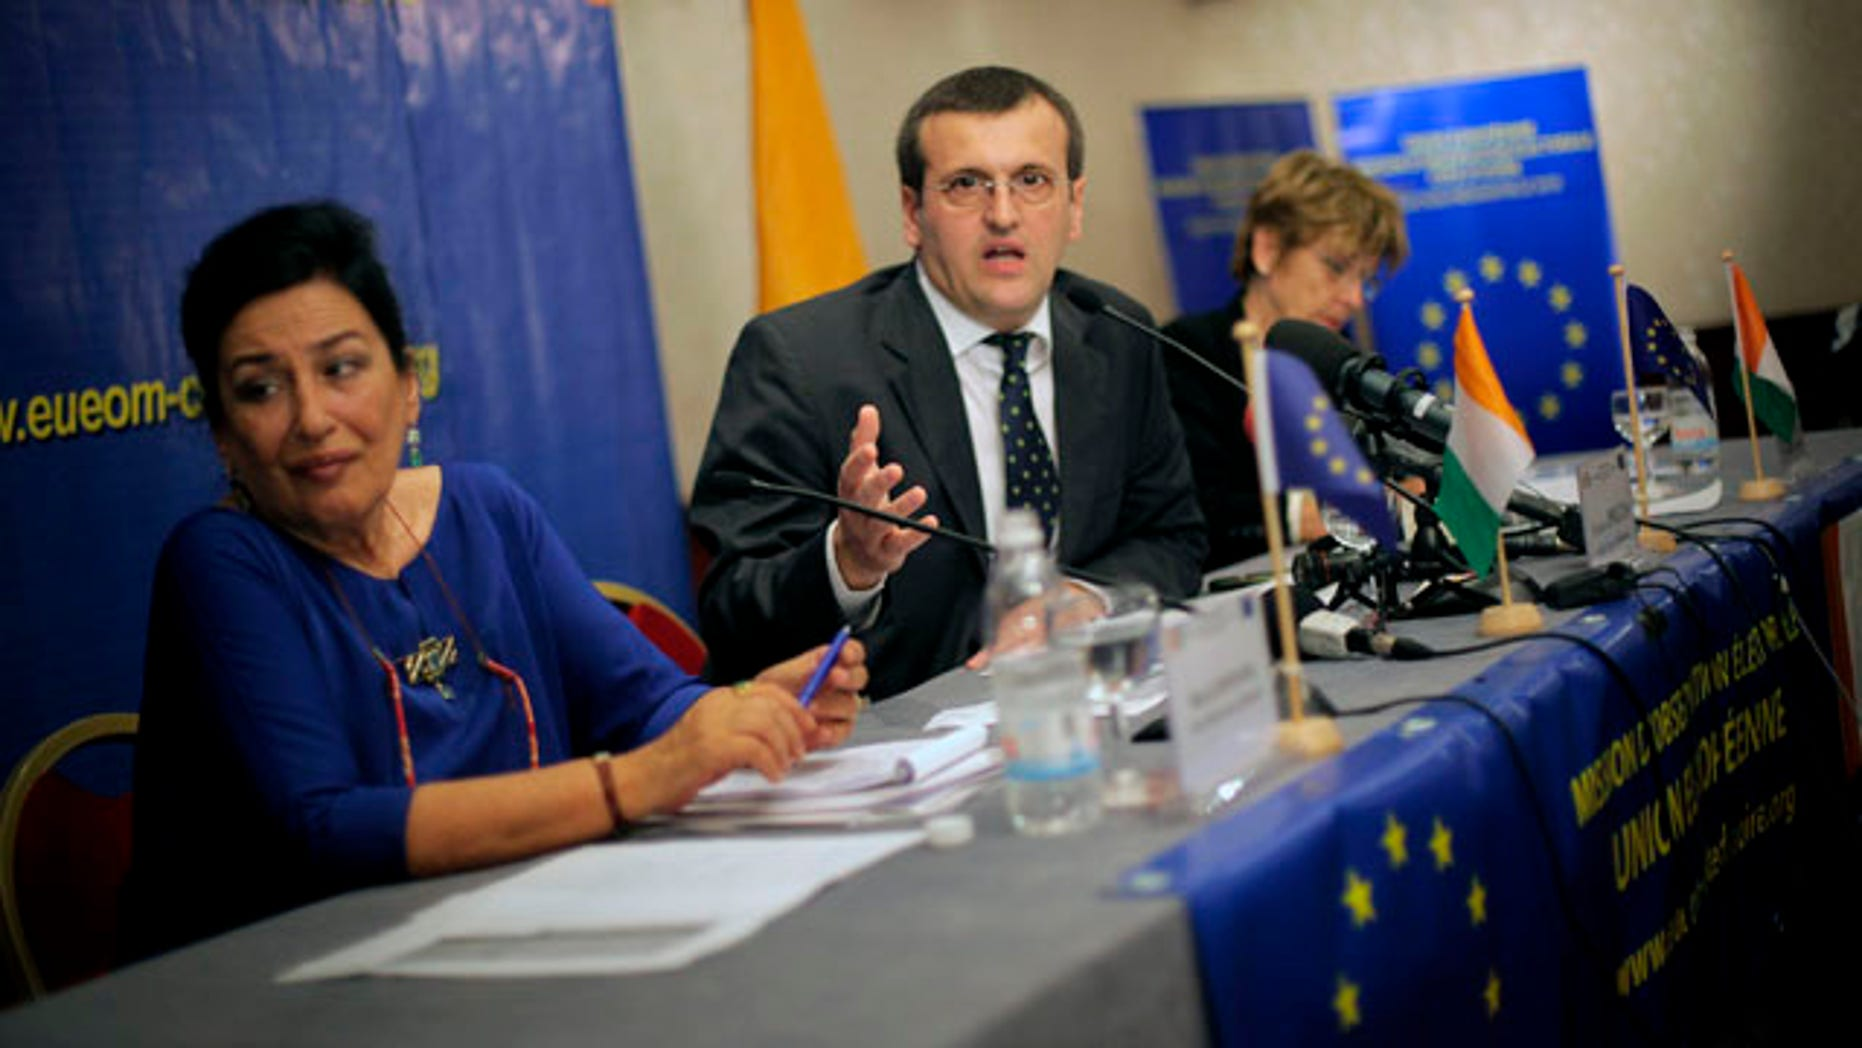 Nov. 2: European Union Chief Elections Observer Cristian Preda, center, from Romania, addresses a news conference in Abidjan, Ivory Coast.